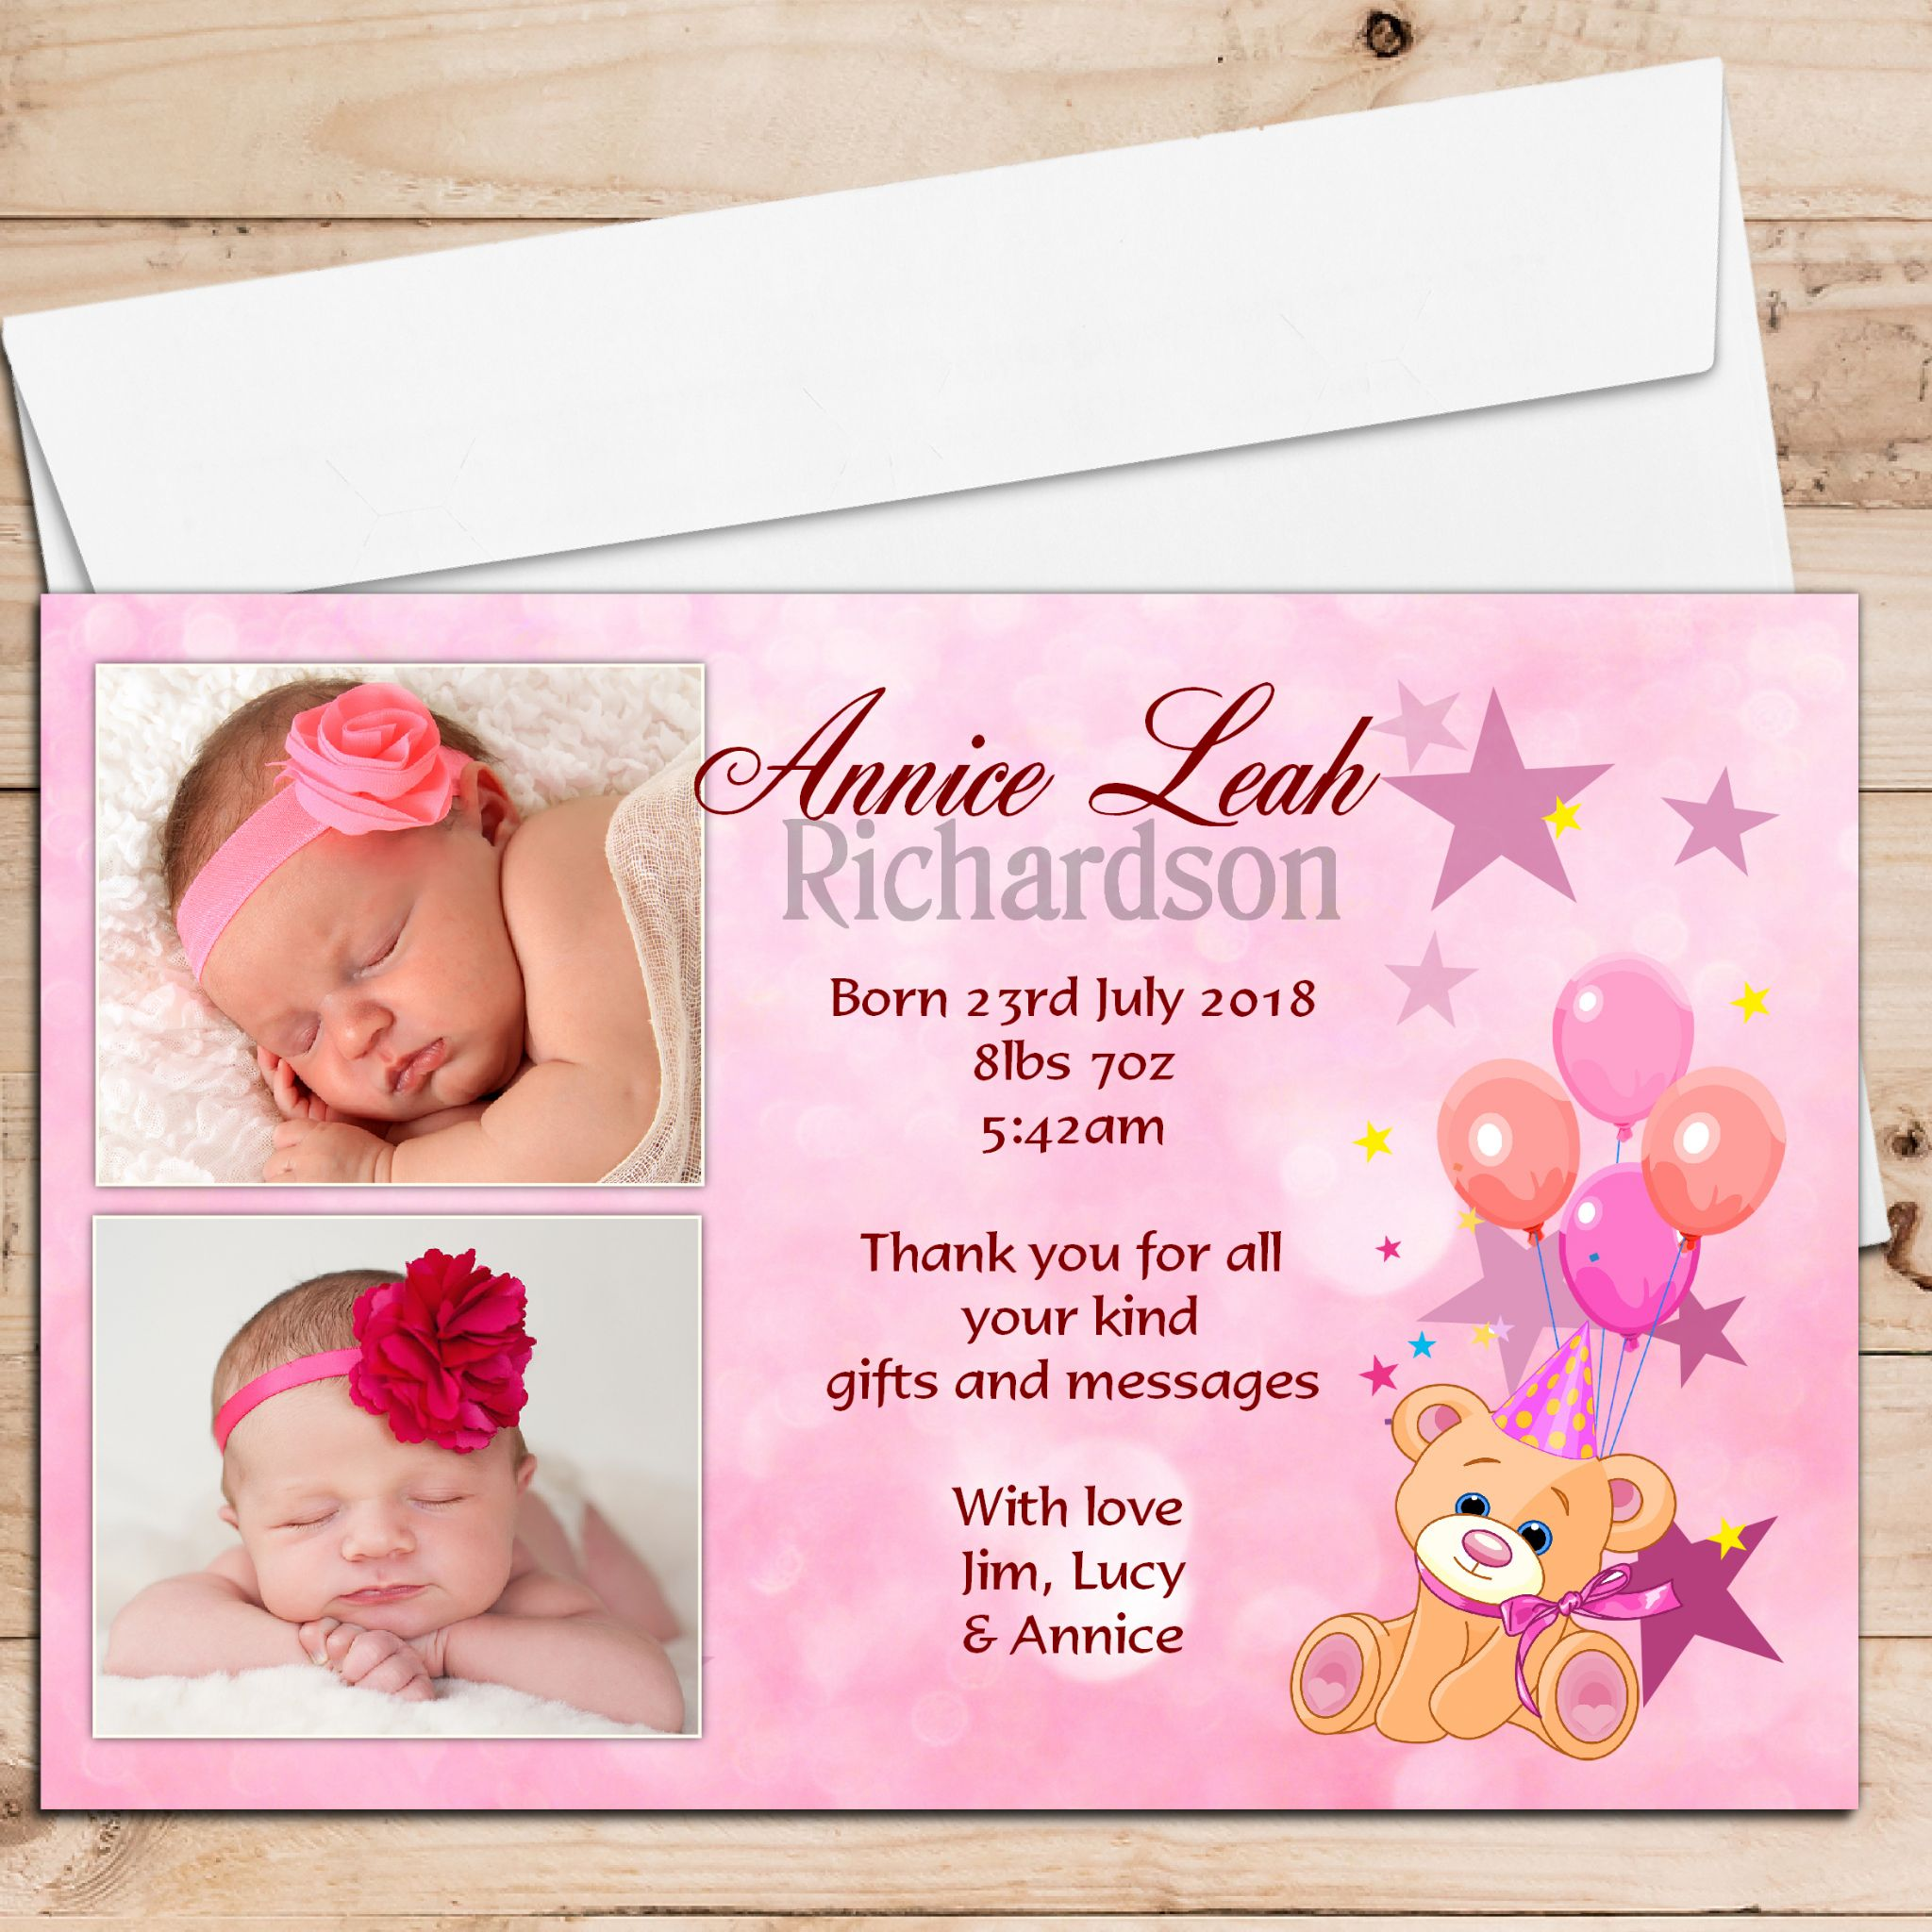 Create Baby Announcement Cards Online Baby Care – Online Baby Announcement Cards